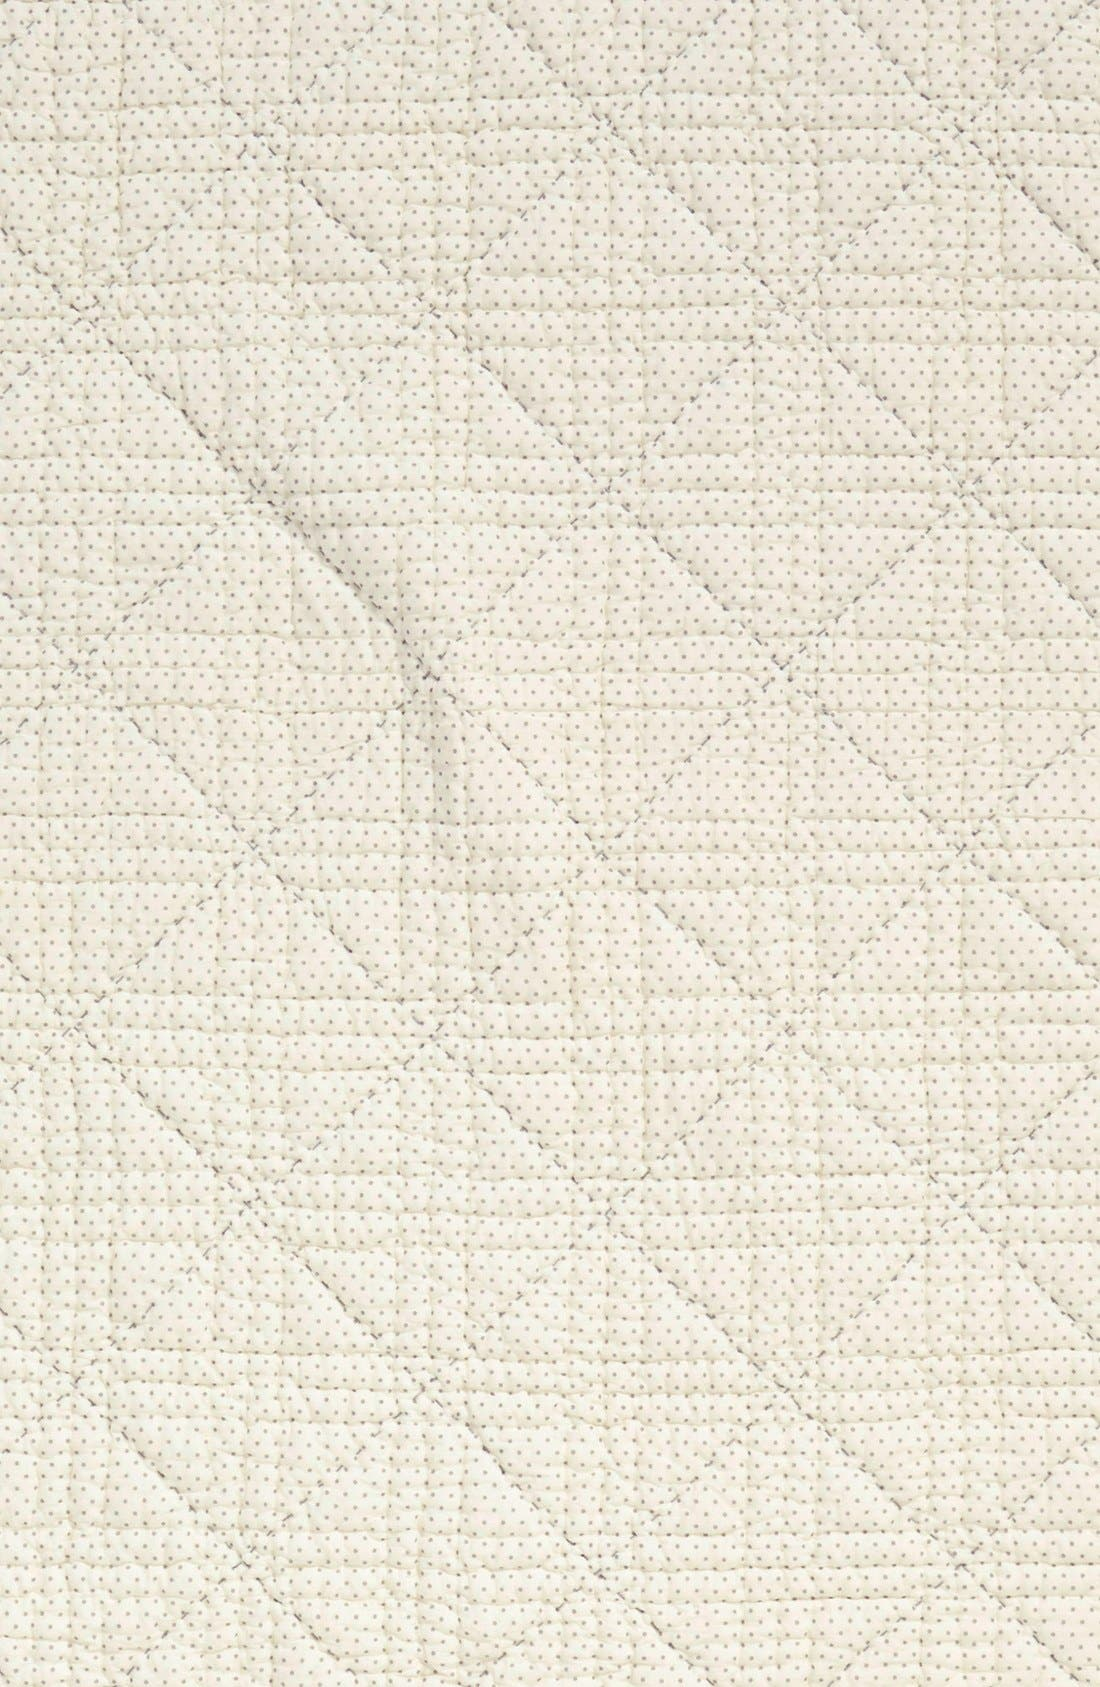 Stork Baby Blanket,                             Alternate thumbnail 2, color,                             020